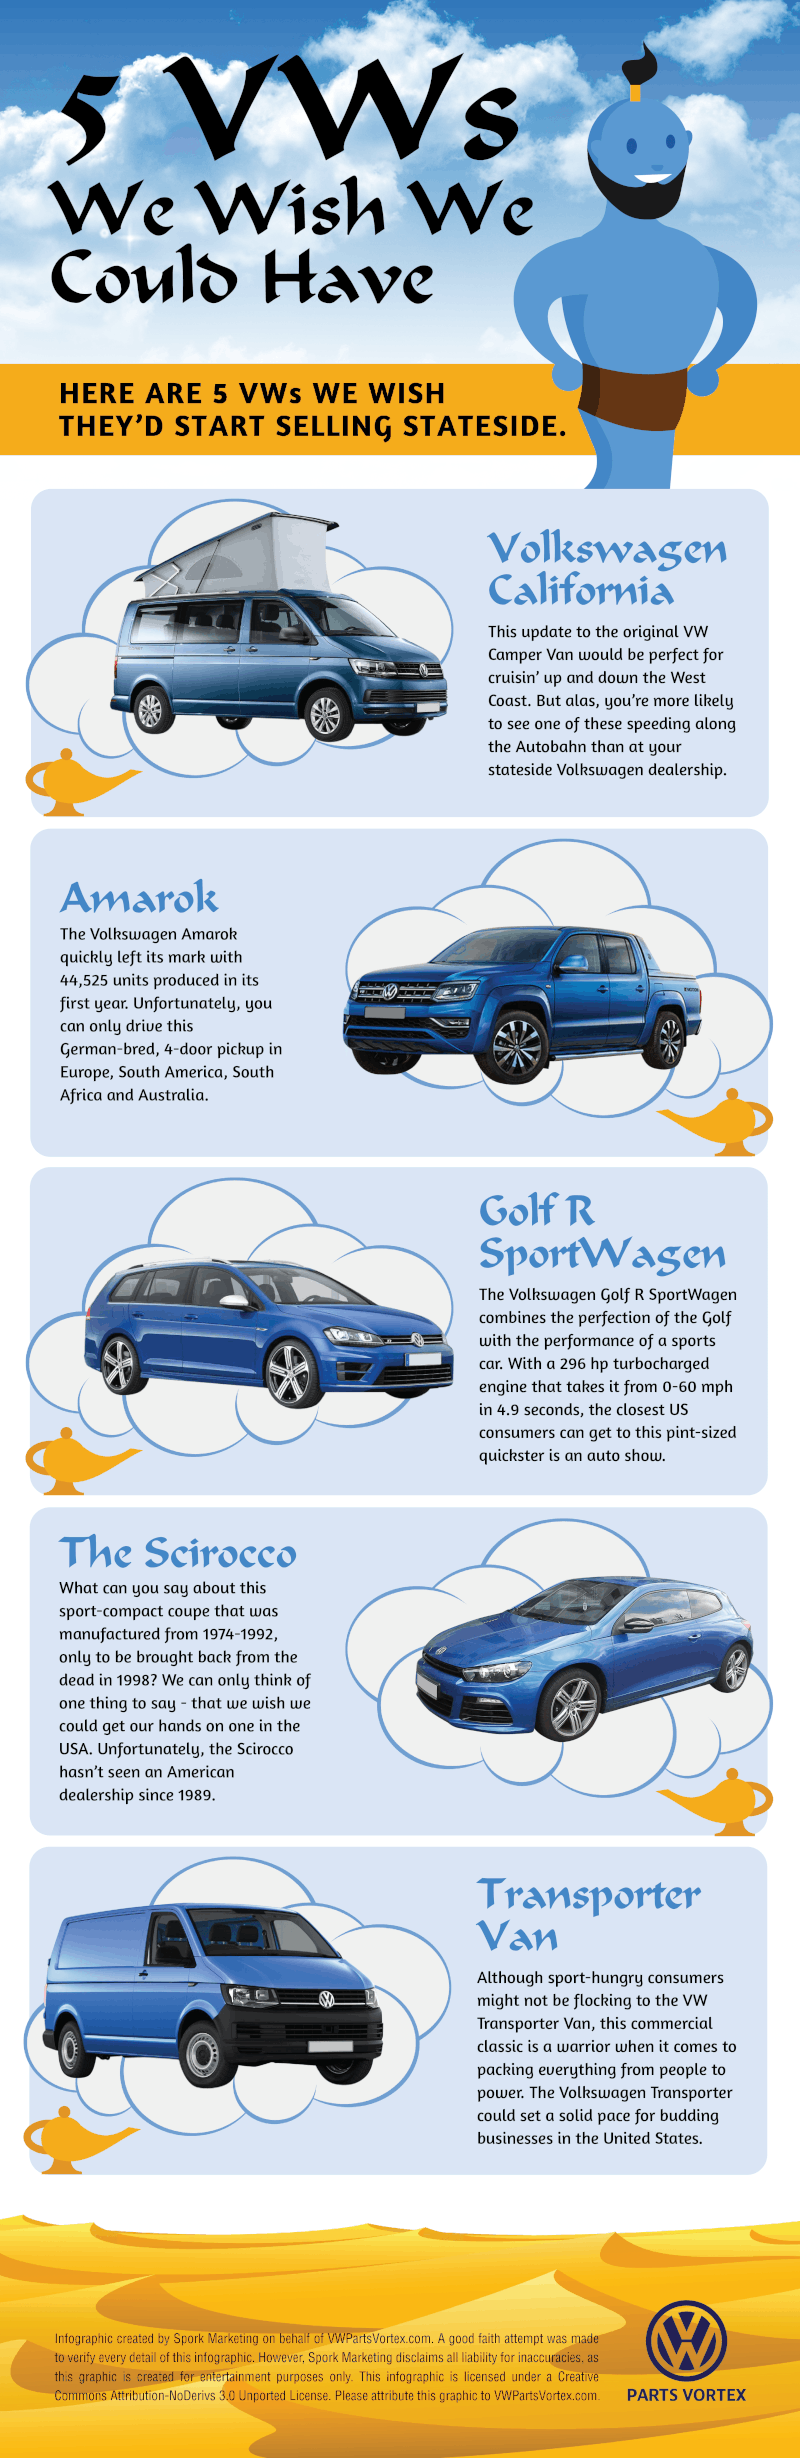 VW Wishlist